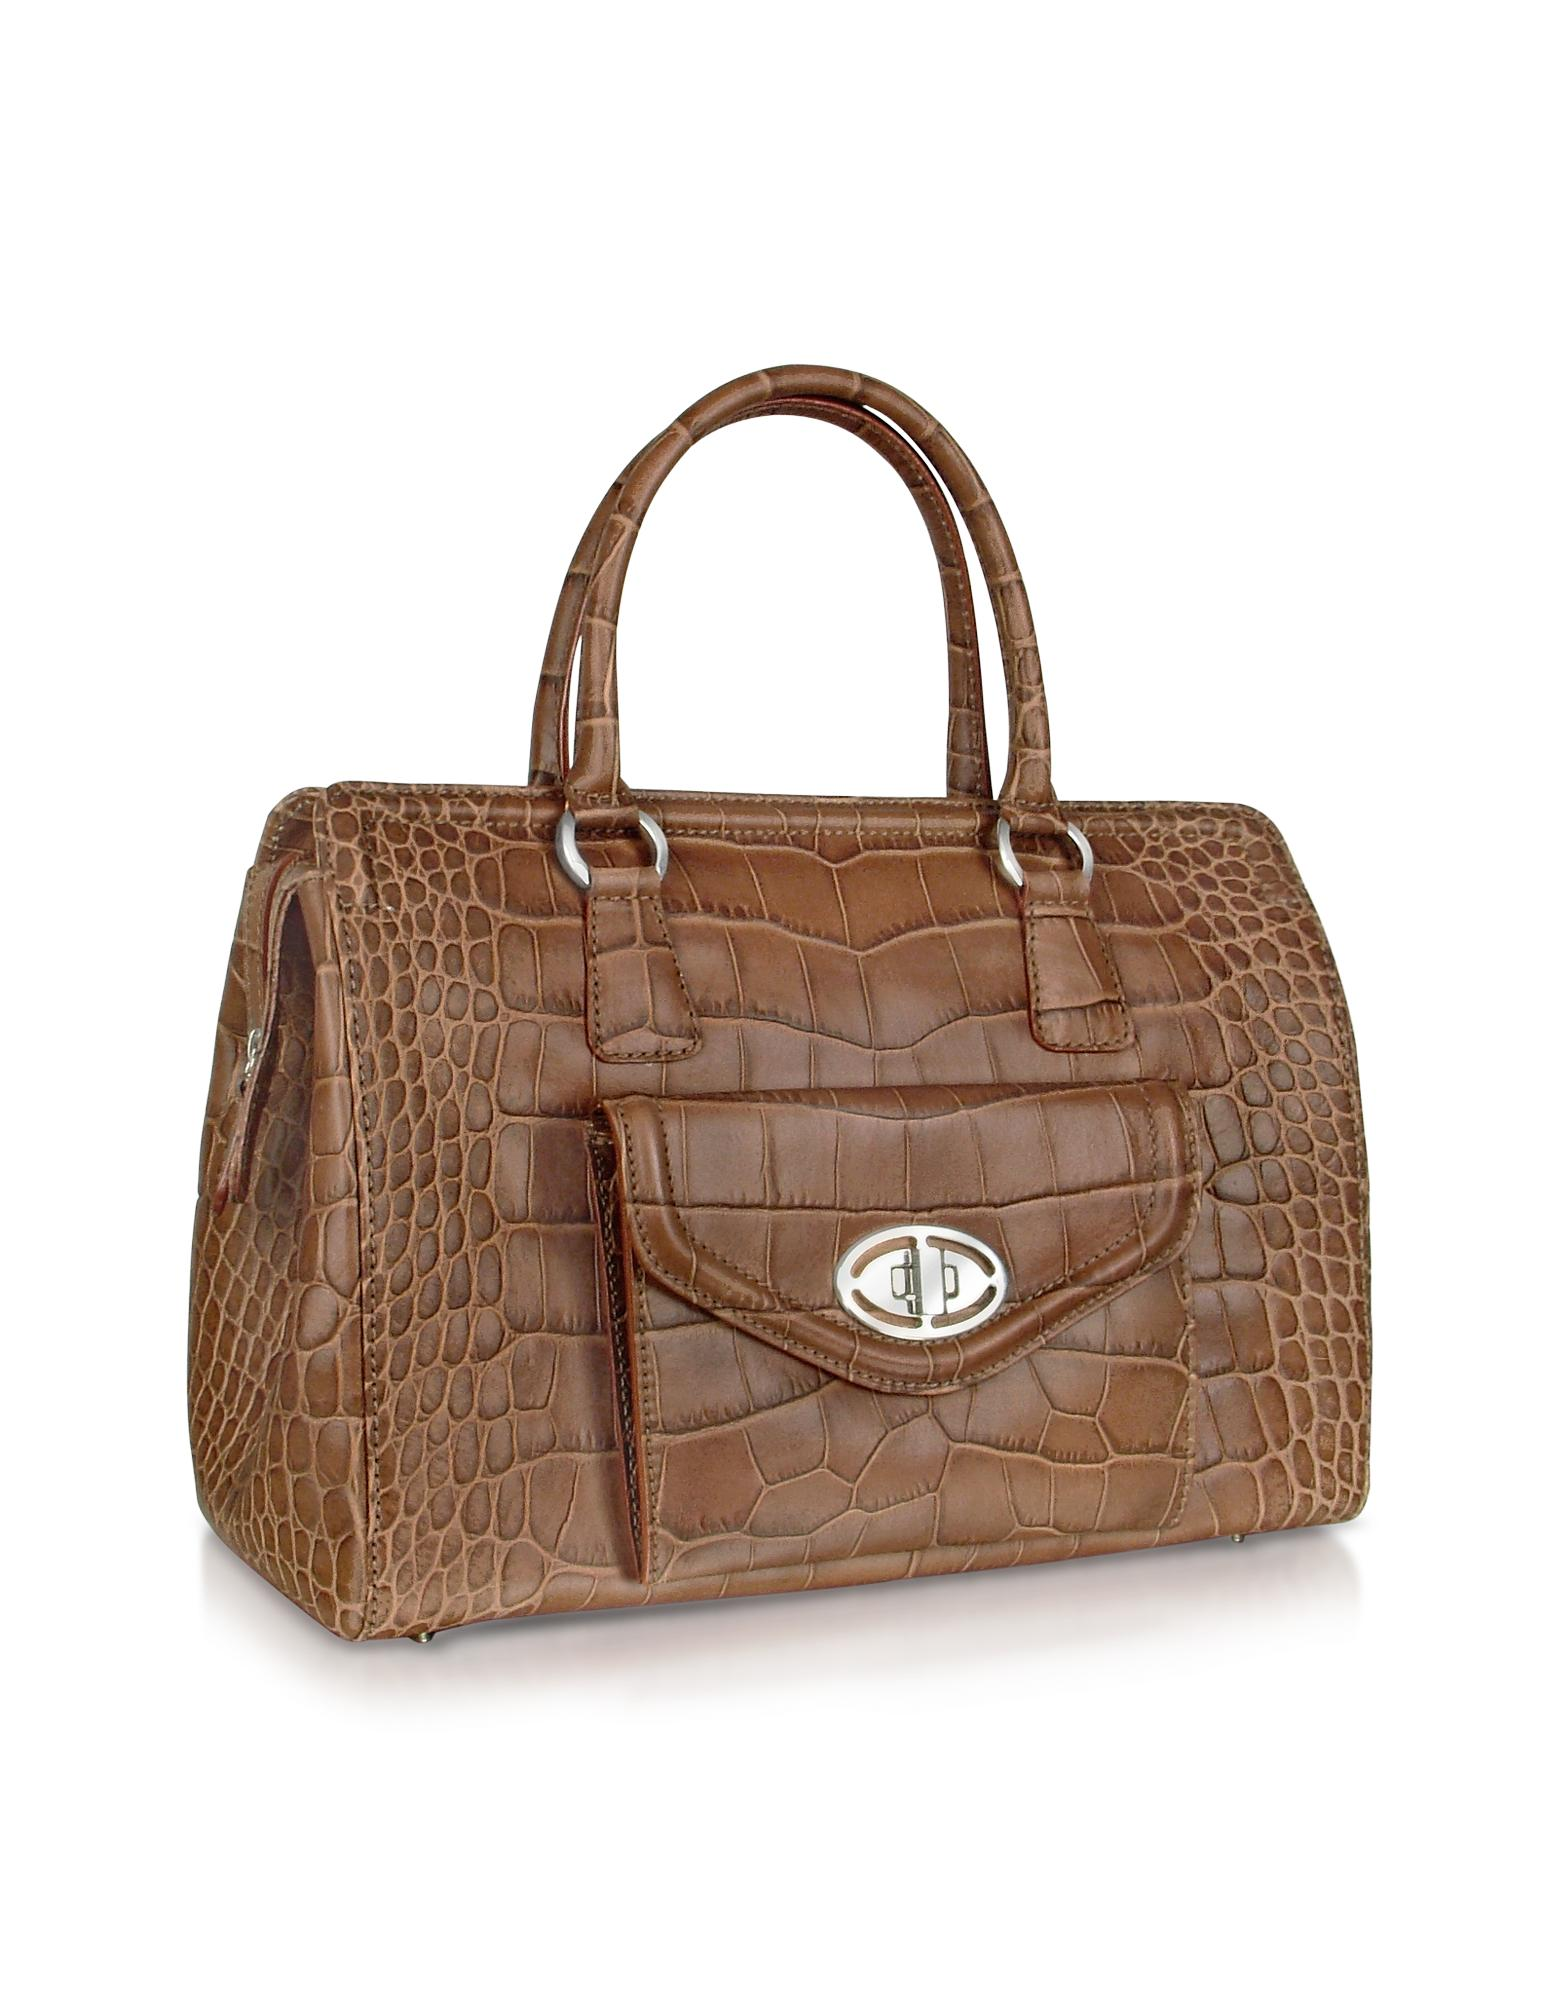 Buti  Front Pocket Brown Croco Stamped Leather Satchel Bag